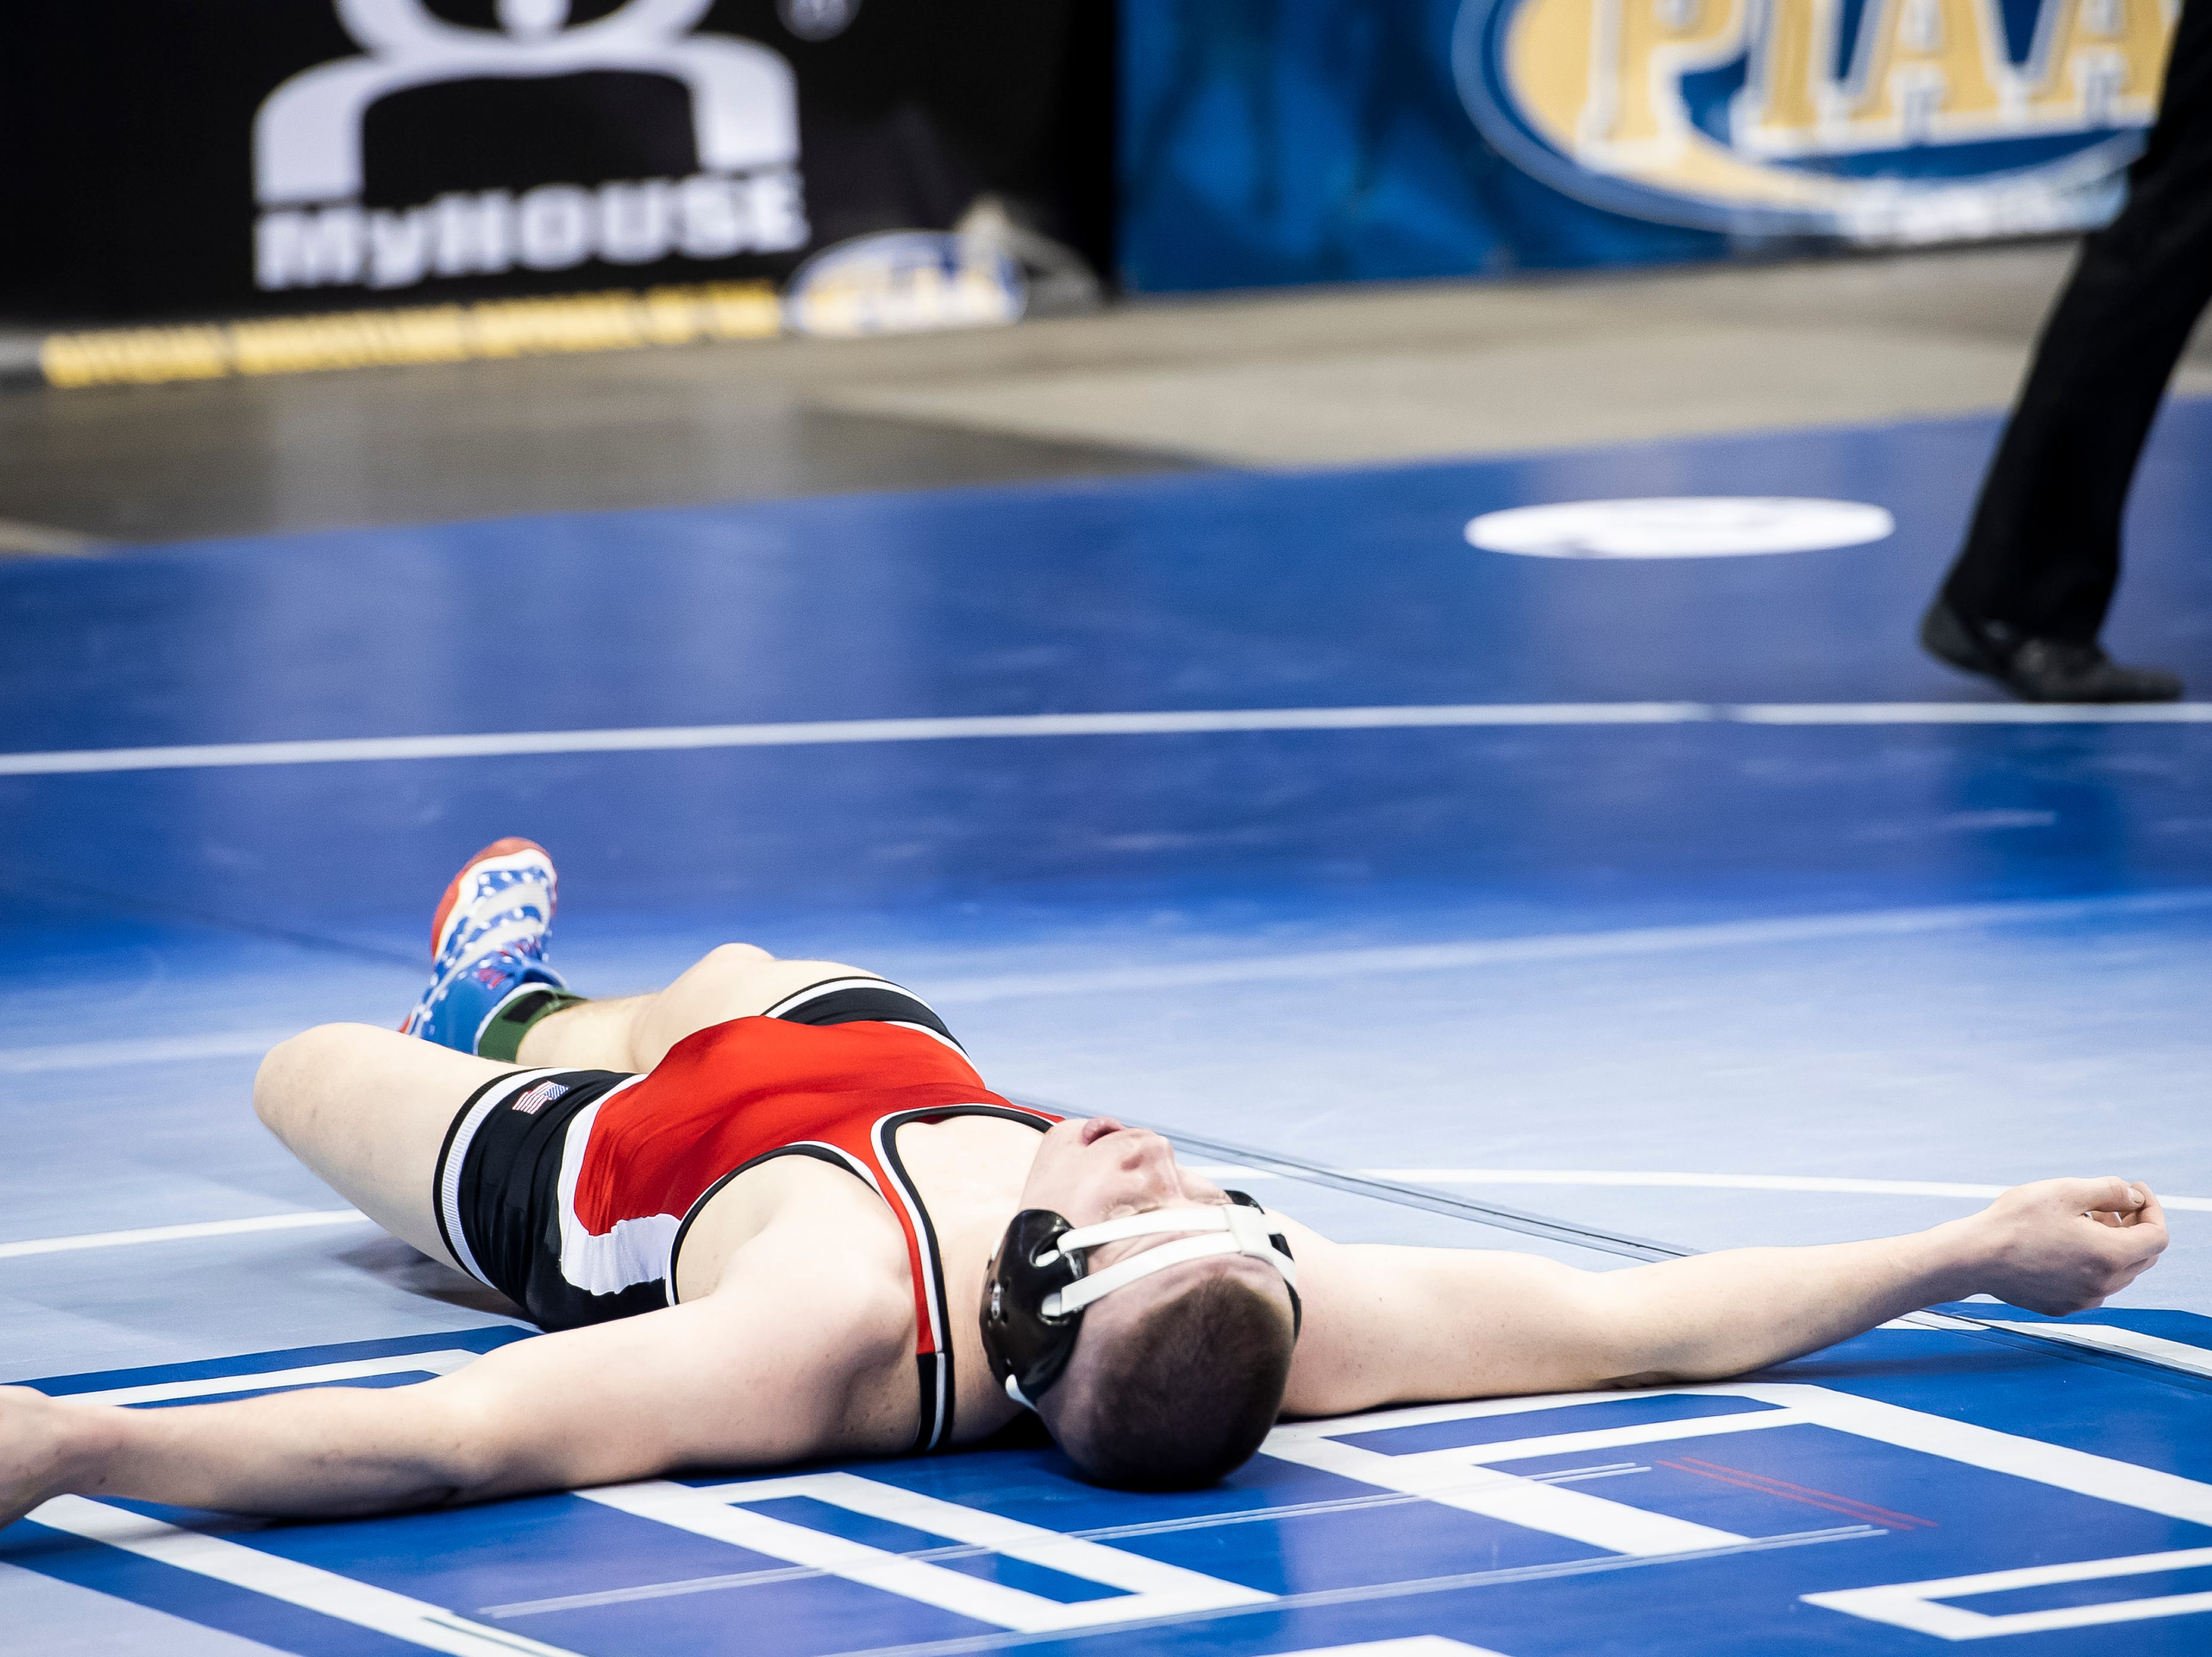 Susquehannock's Colby Romjue lies on the mat after falling to Bellefonte's Ethan Richner during the 3A 152-pound quarterfinal bout at the Giant Center in Hershey Friday, March 8, 2019. Richner won 9-5 TB2.